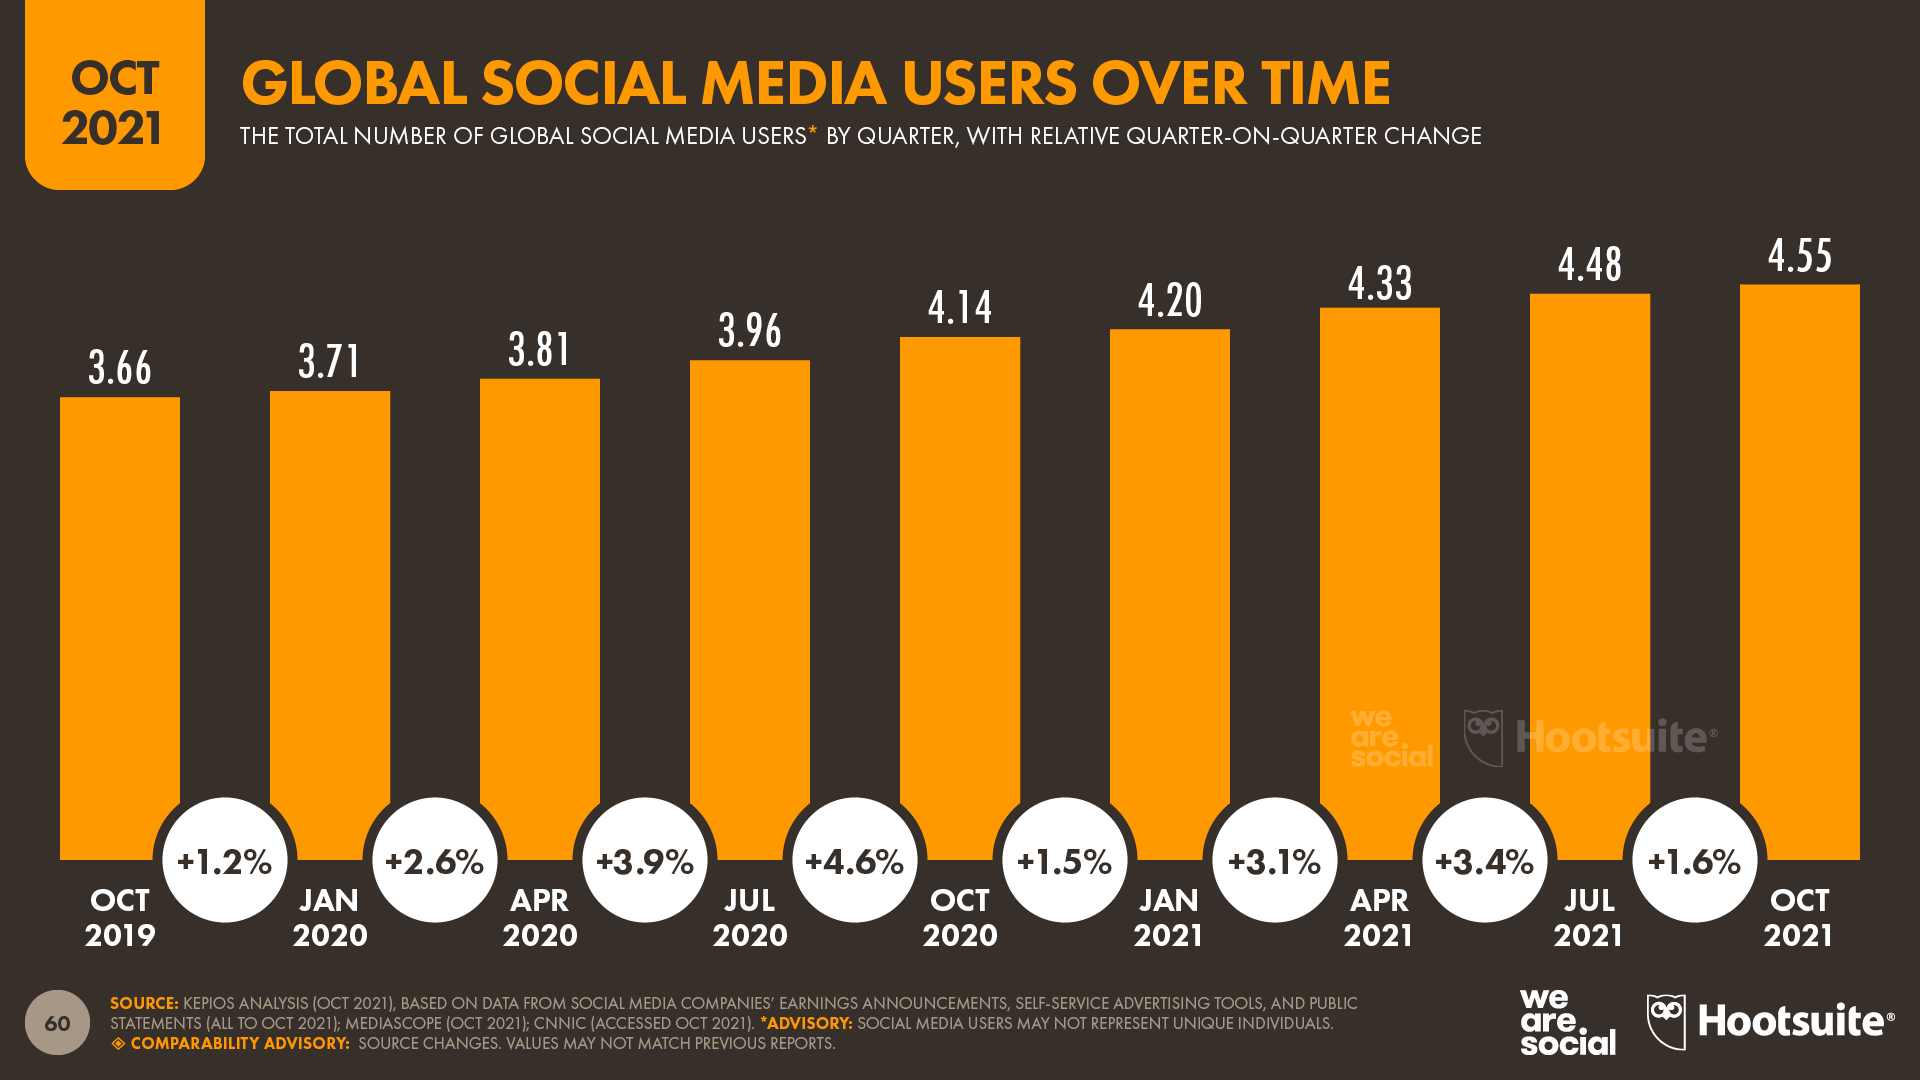 chart showing Global Social Media Users Over Time